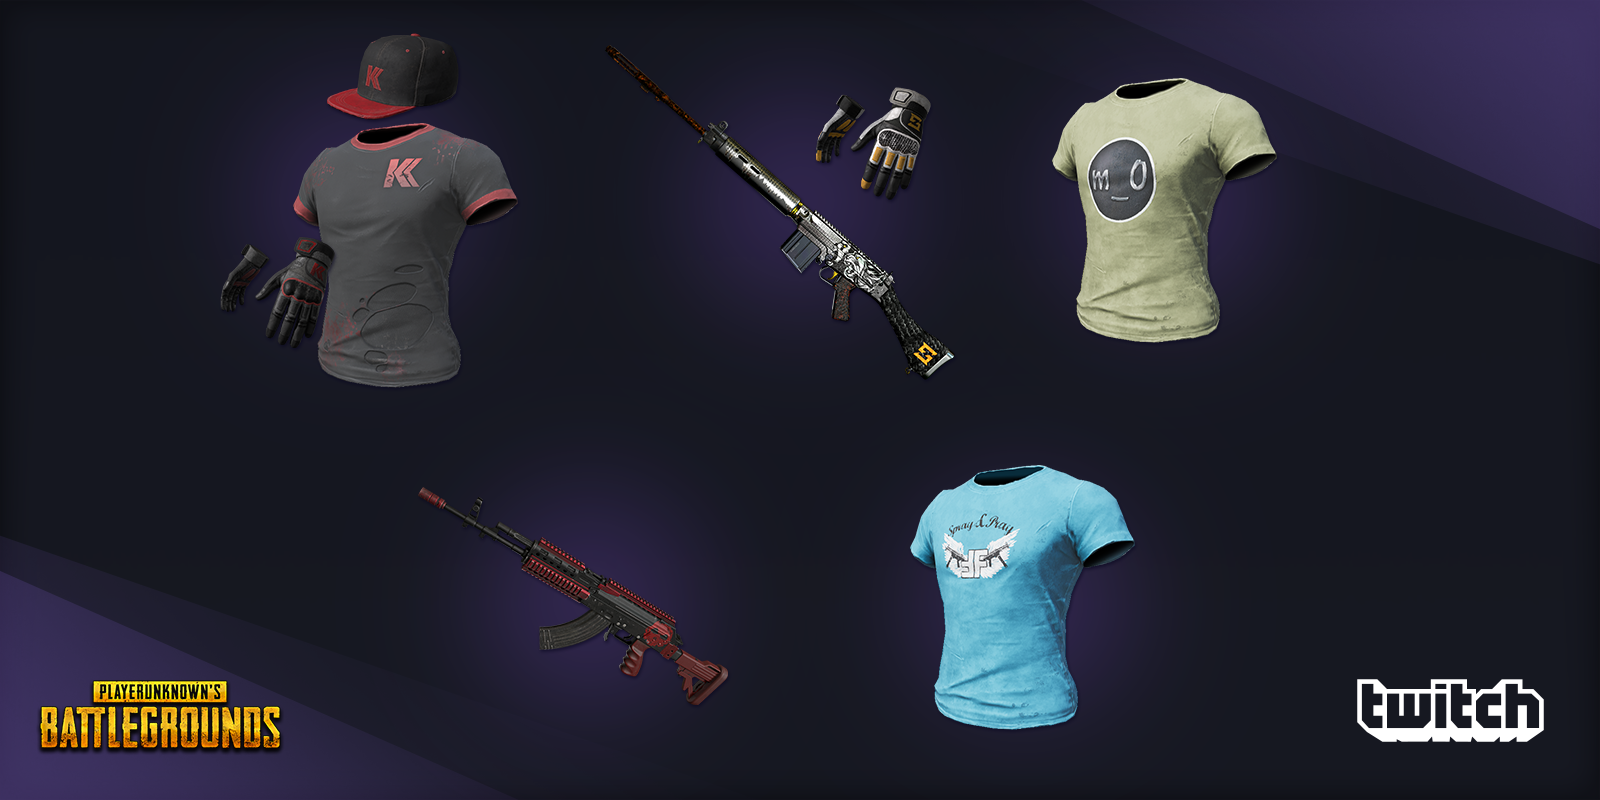 UPDATED August 23: Next round of PUBG skins featuring your